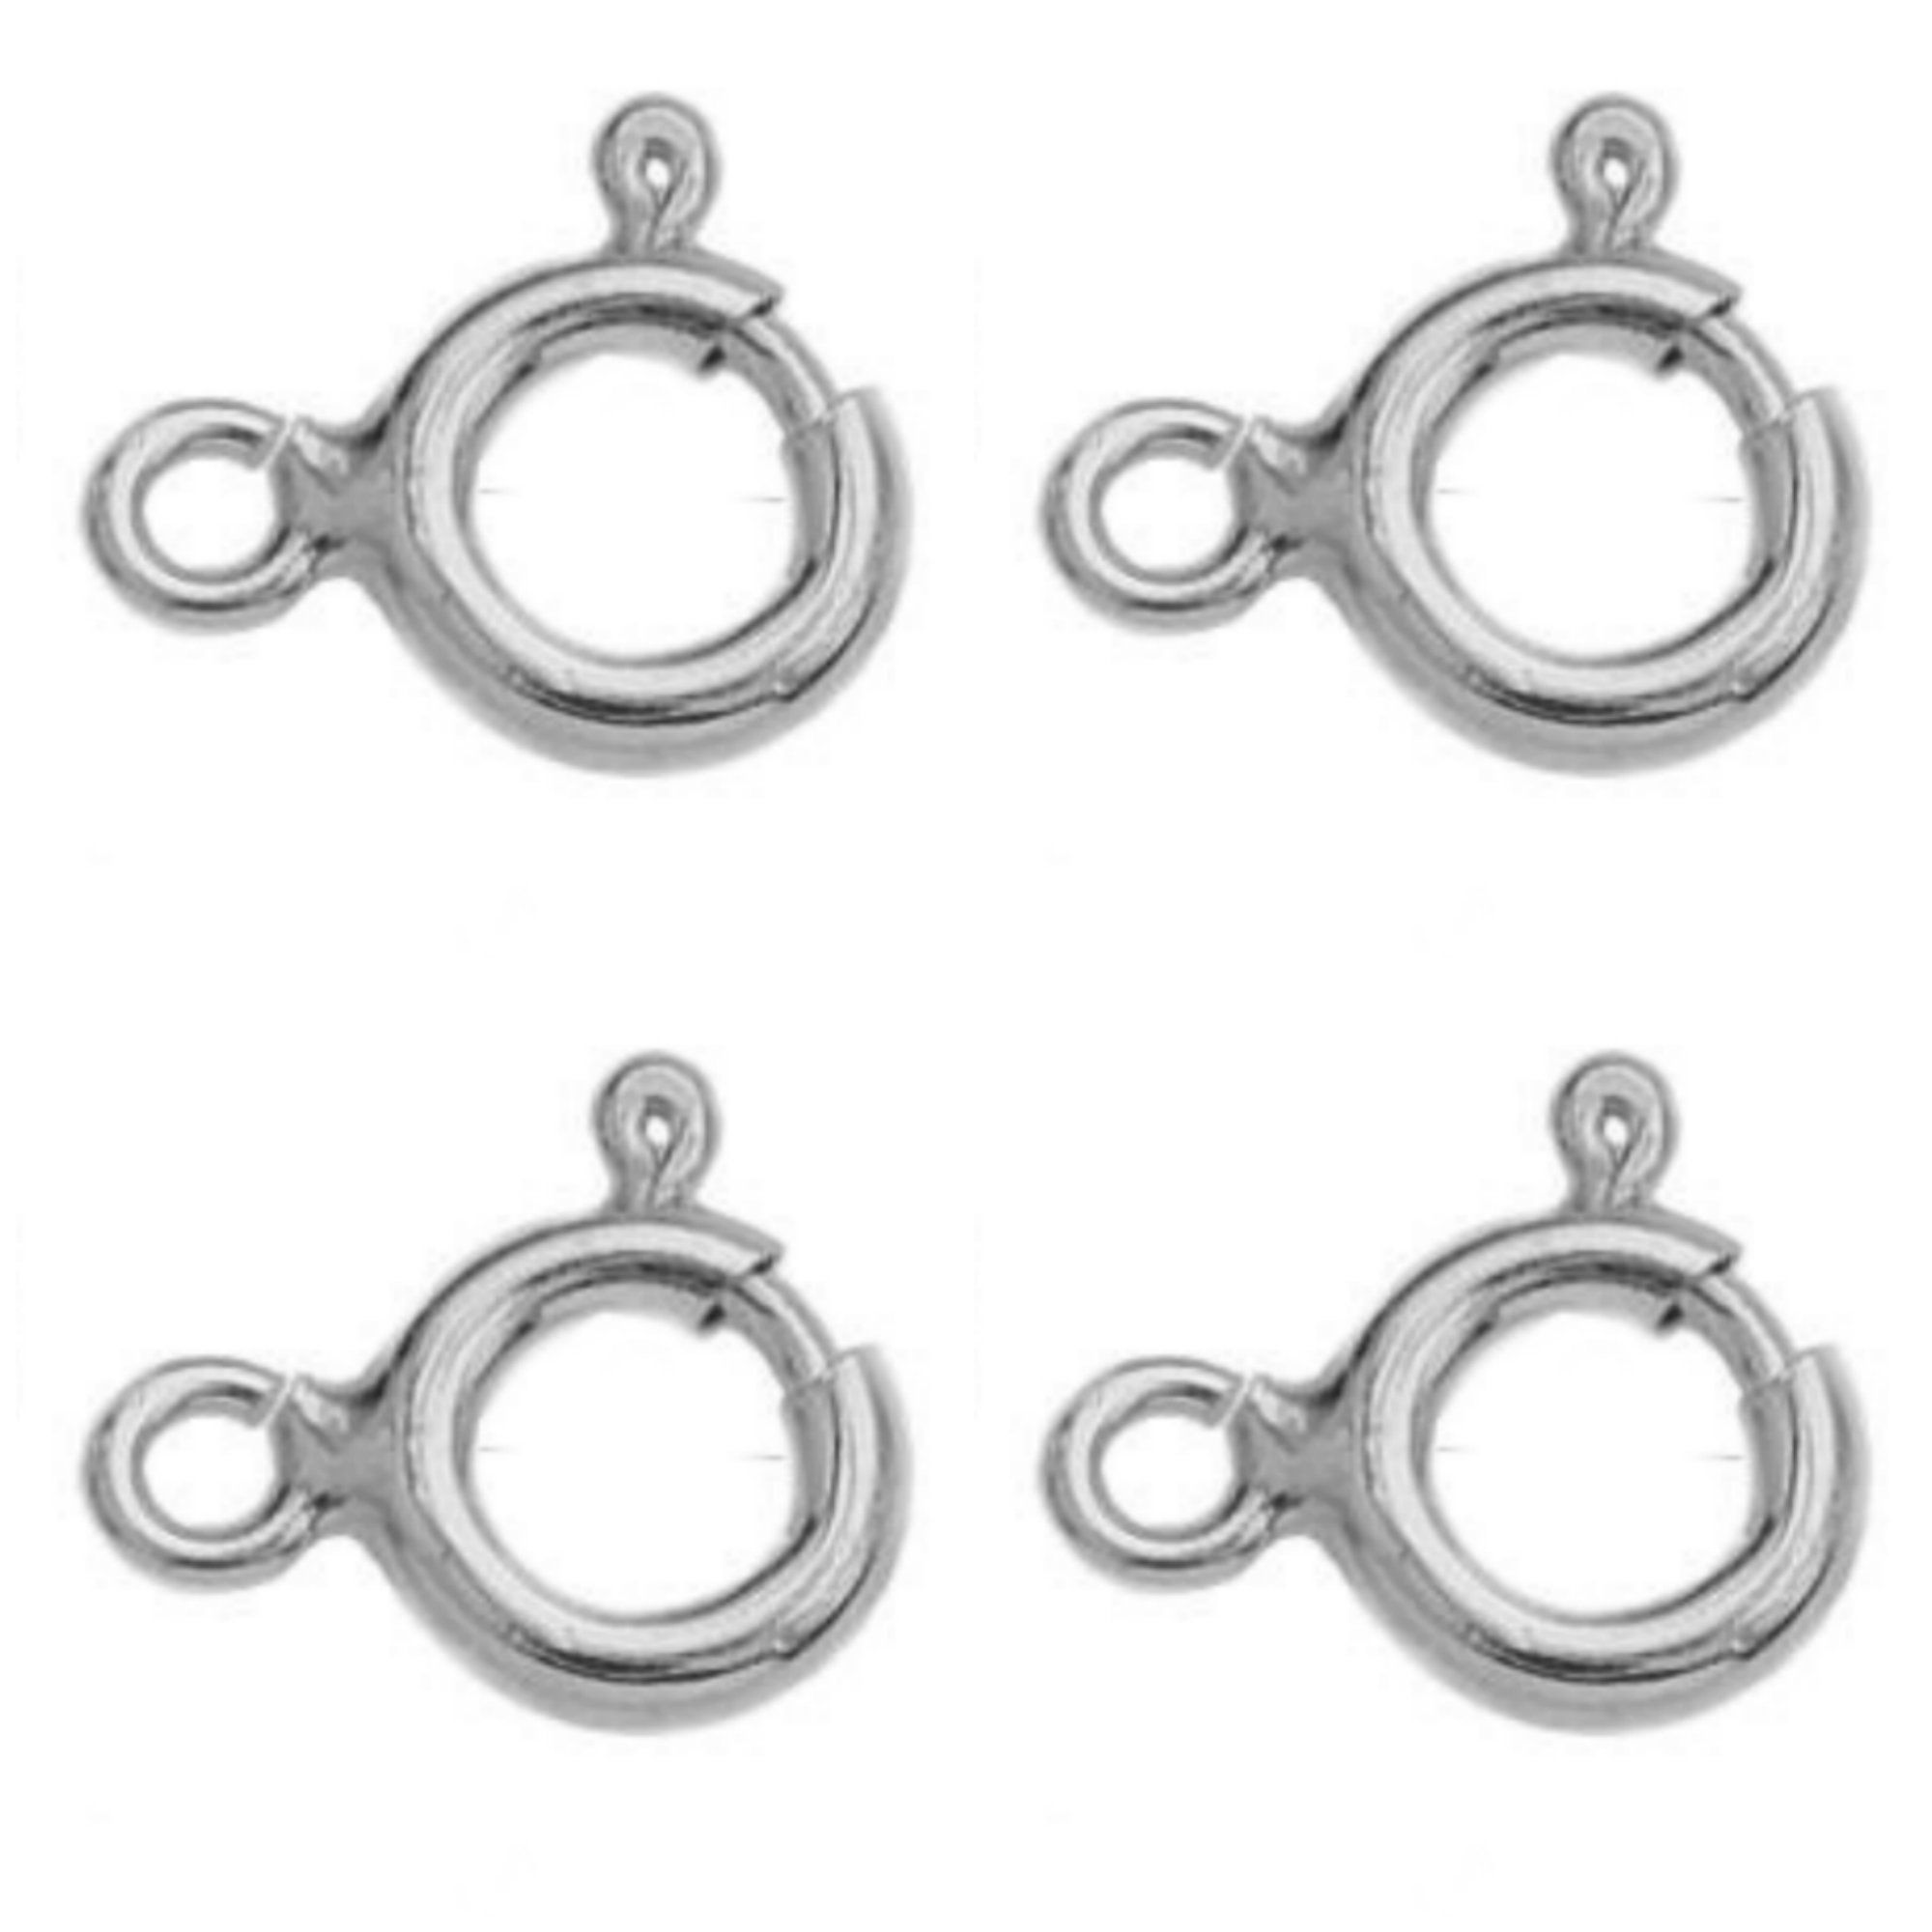 Bolt Spring Ring Clasps Jewellery Findings 925 Sterling Silver